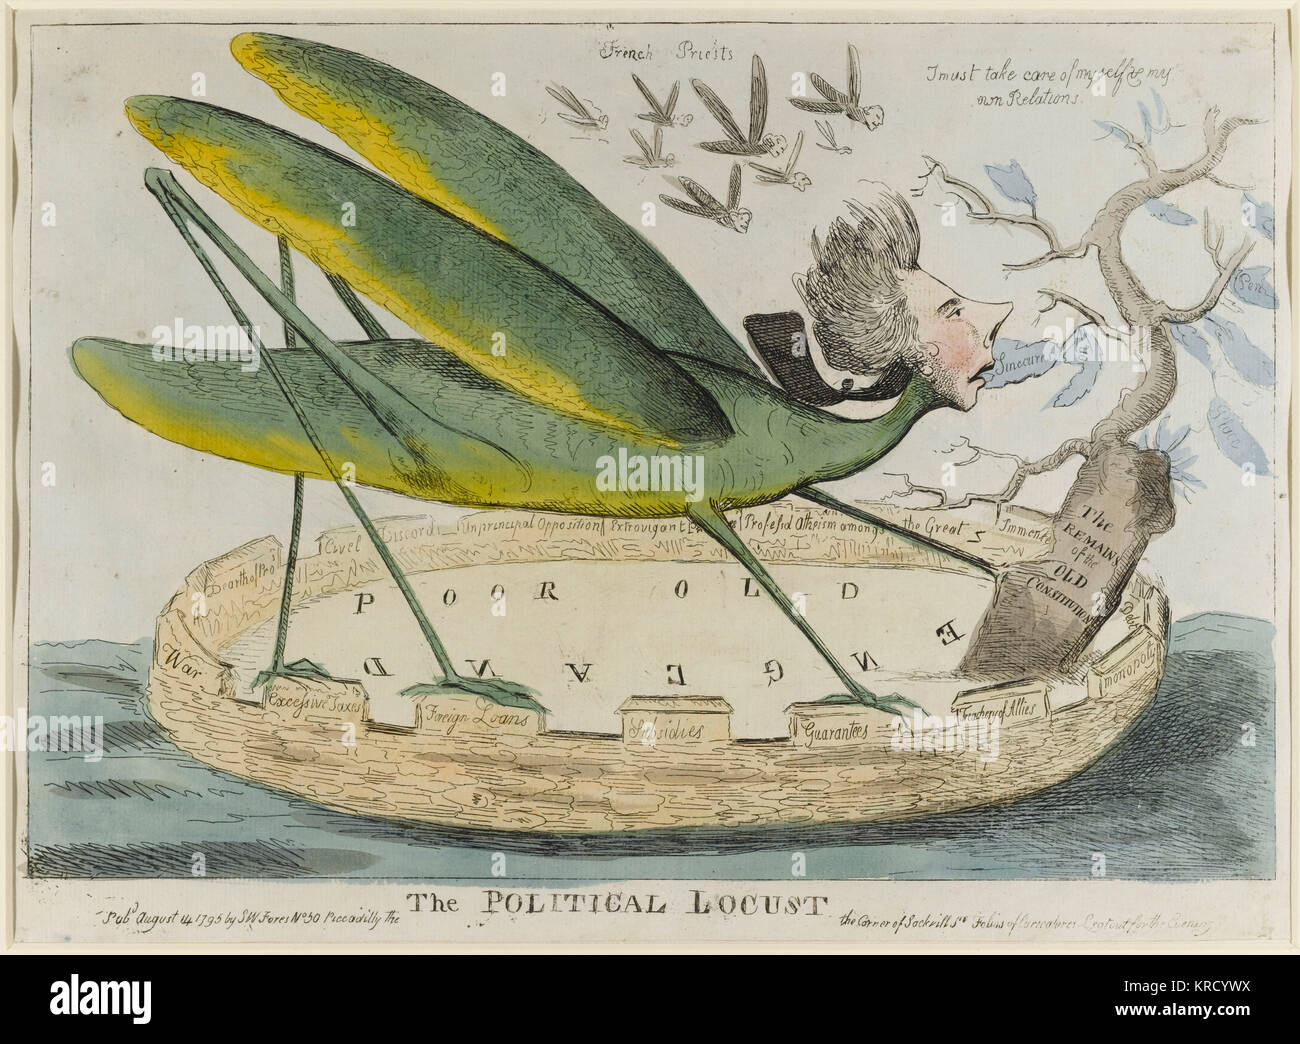 Satirical cartoon, The Political Locust. A caricature of the politician, William Pitt, as a locust devouring the - Stock Image